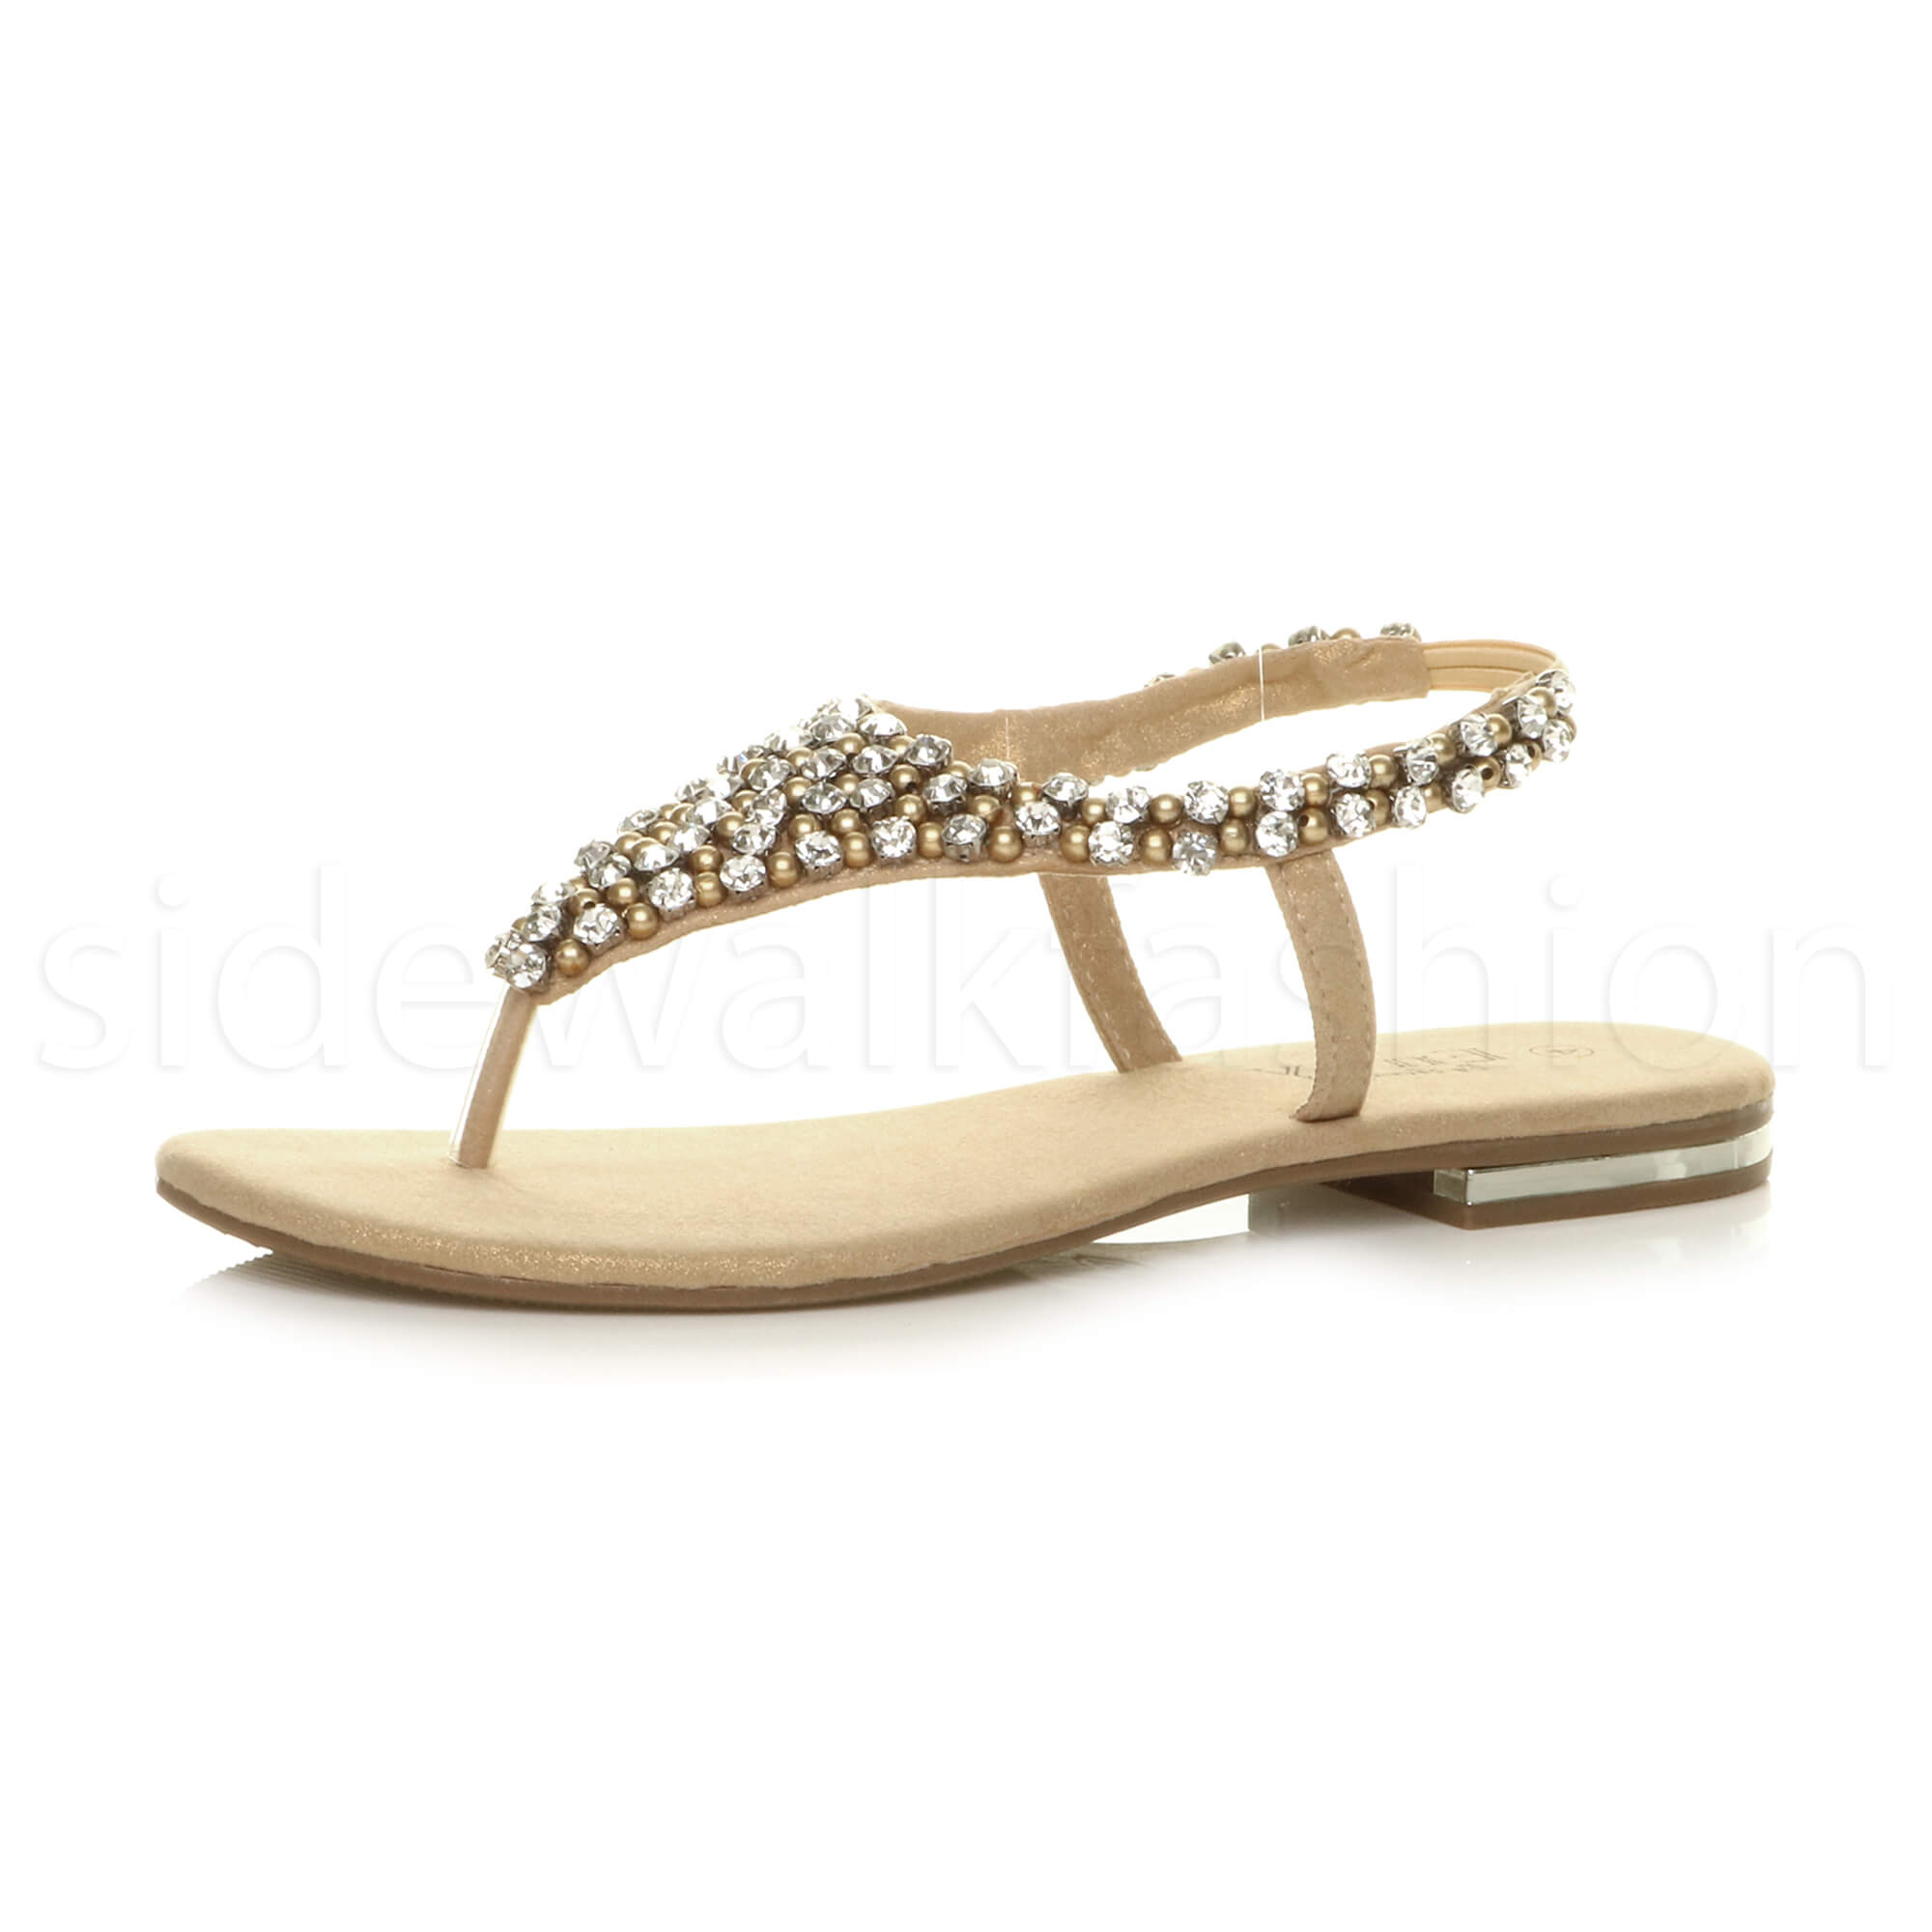 9a6efa0b15a2a7 Womens ladies flat toe post t-bar diamante beaded slingback sparkly sandals  size